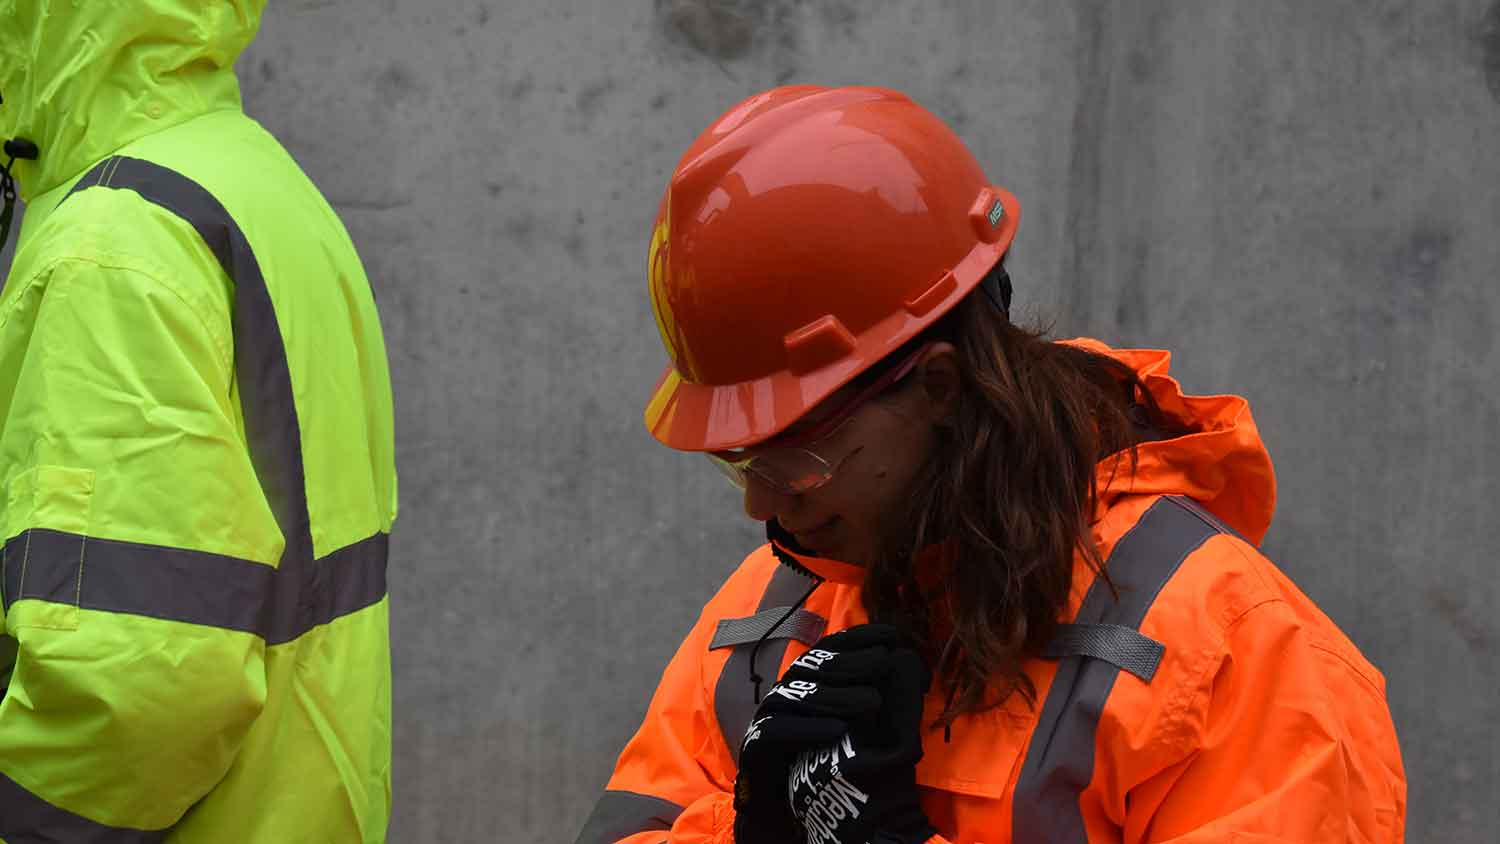 A construction worker with a red hard hat and orange hi-vis